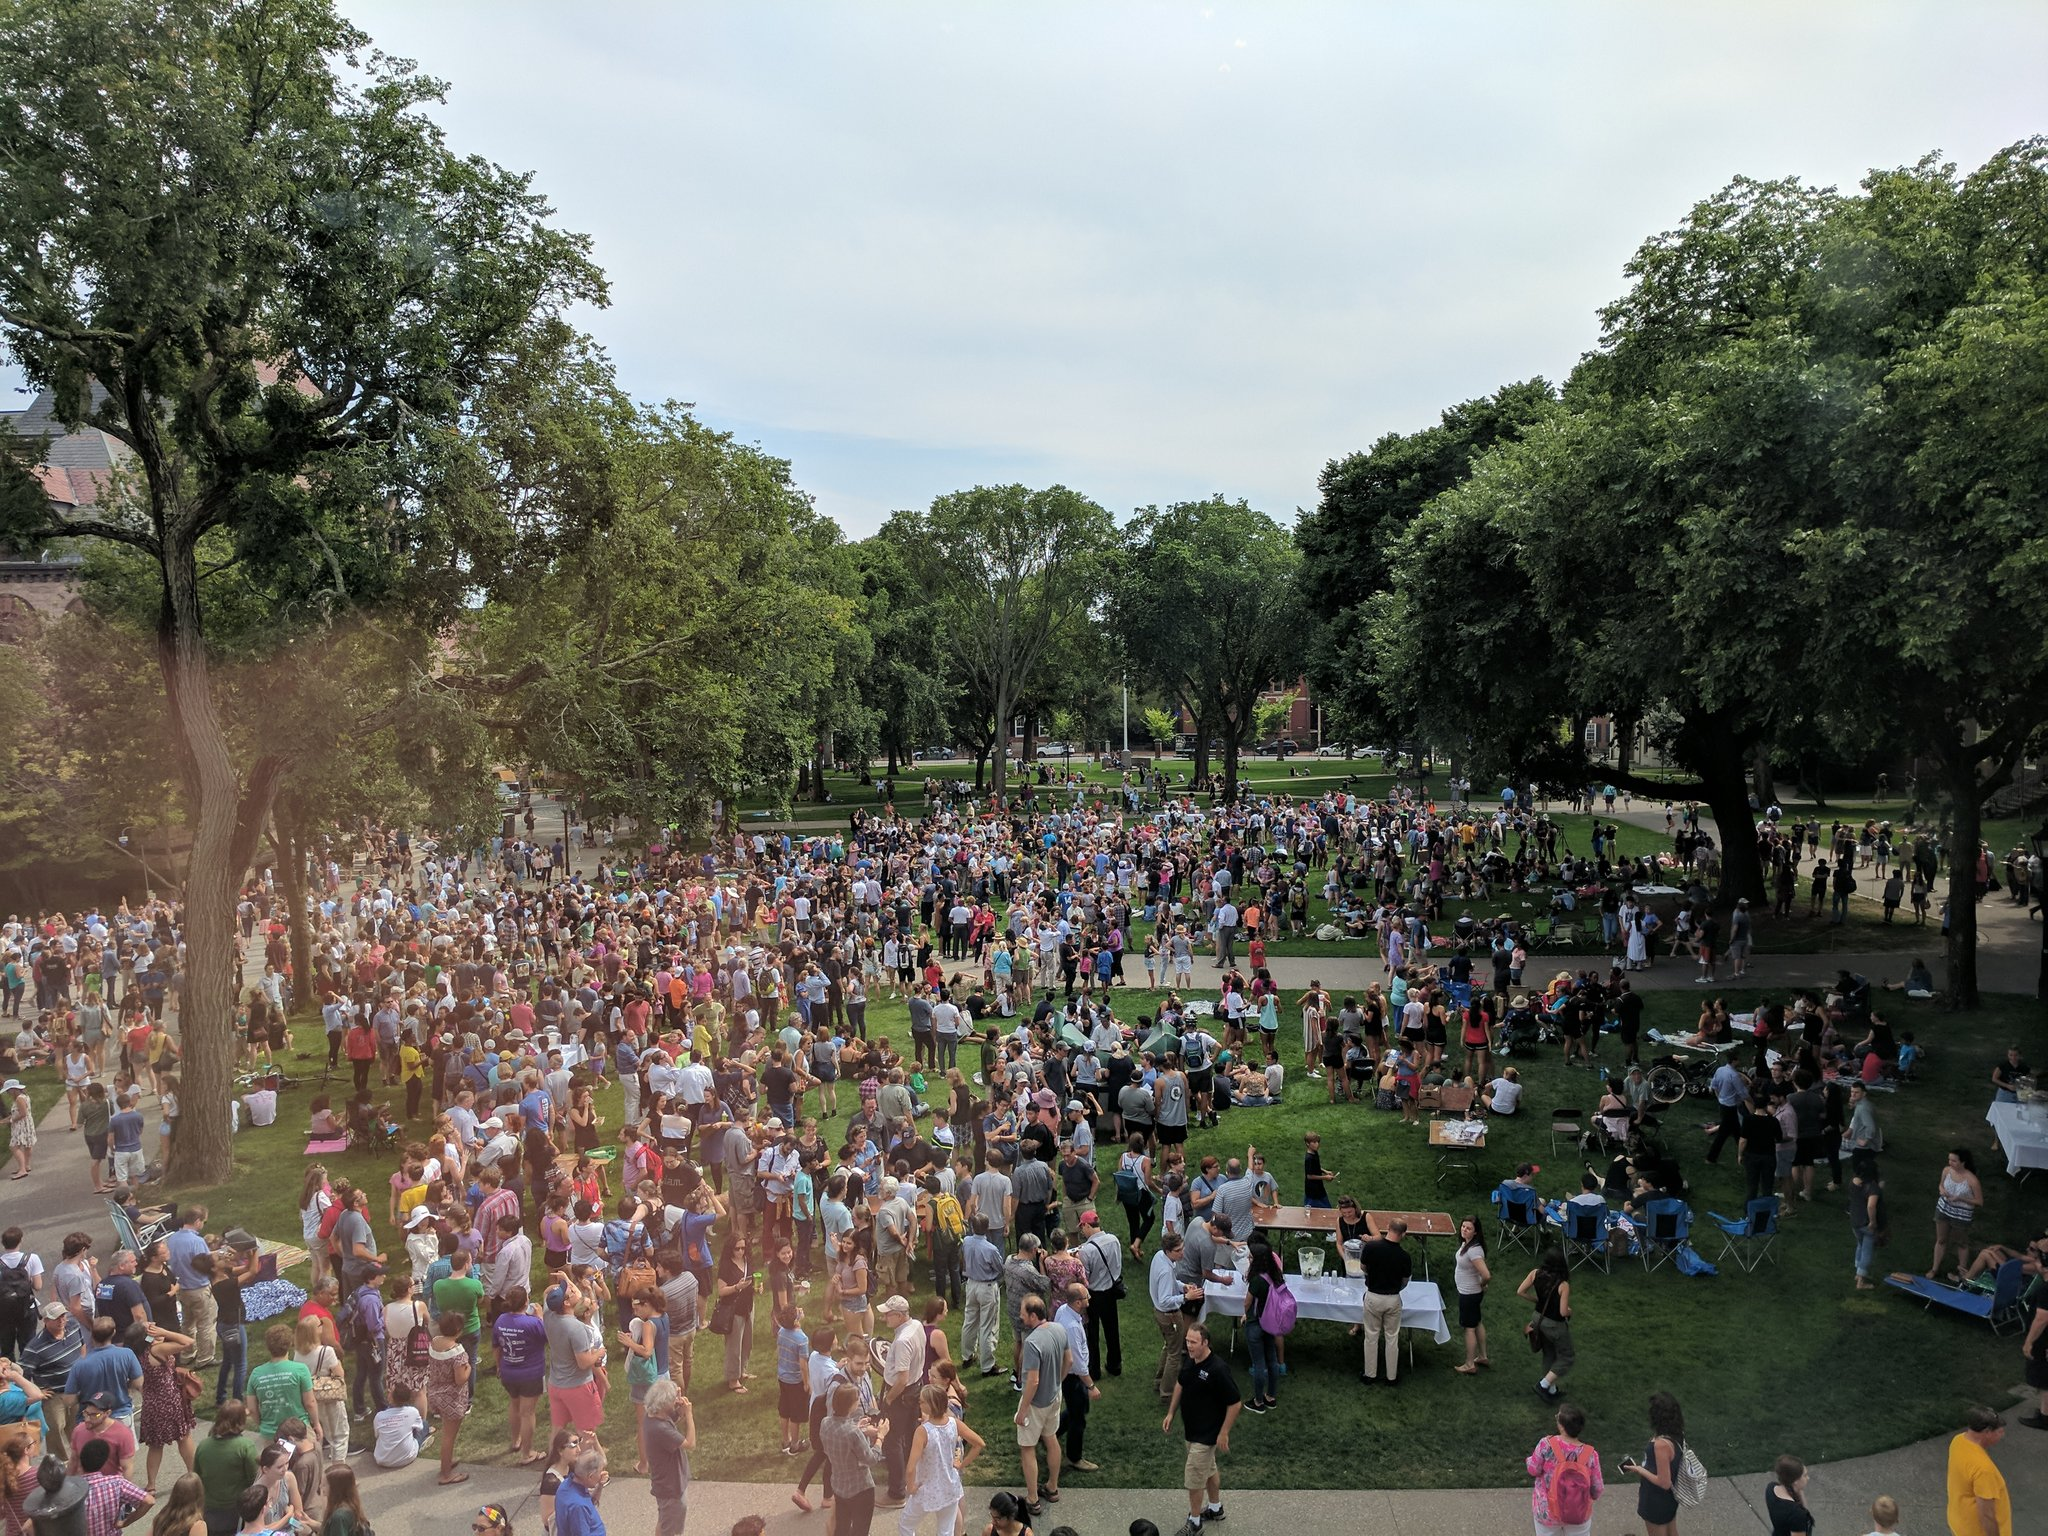 Big crowds, Main Green at Brown University to watch the solar eclipse. @BrownUniversity https://t.co/saMTh7Iiab